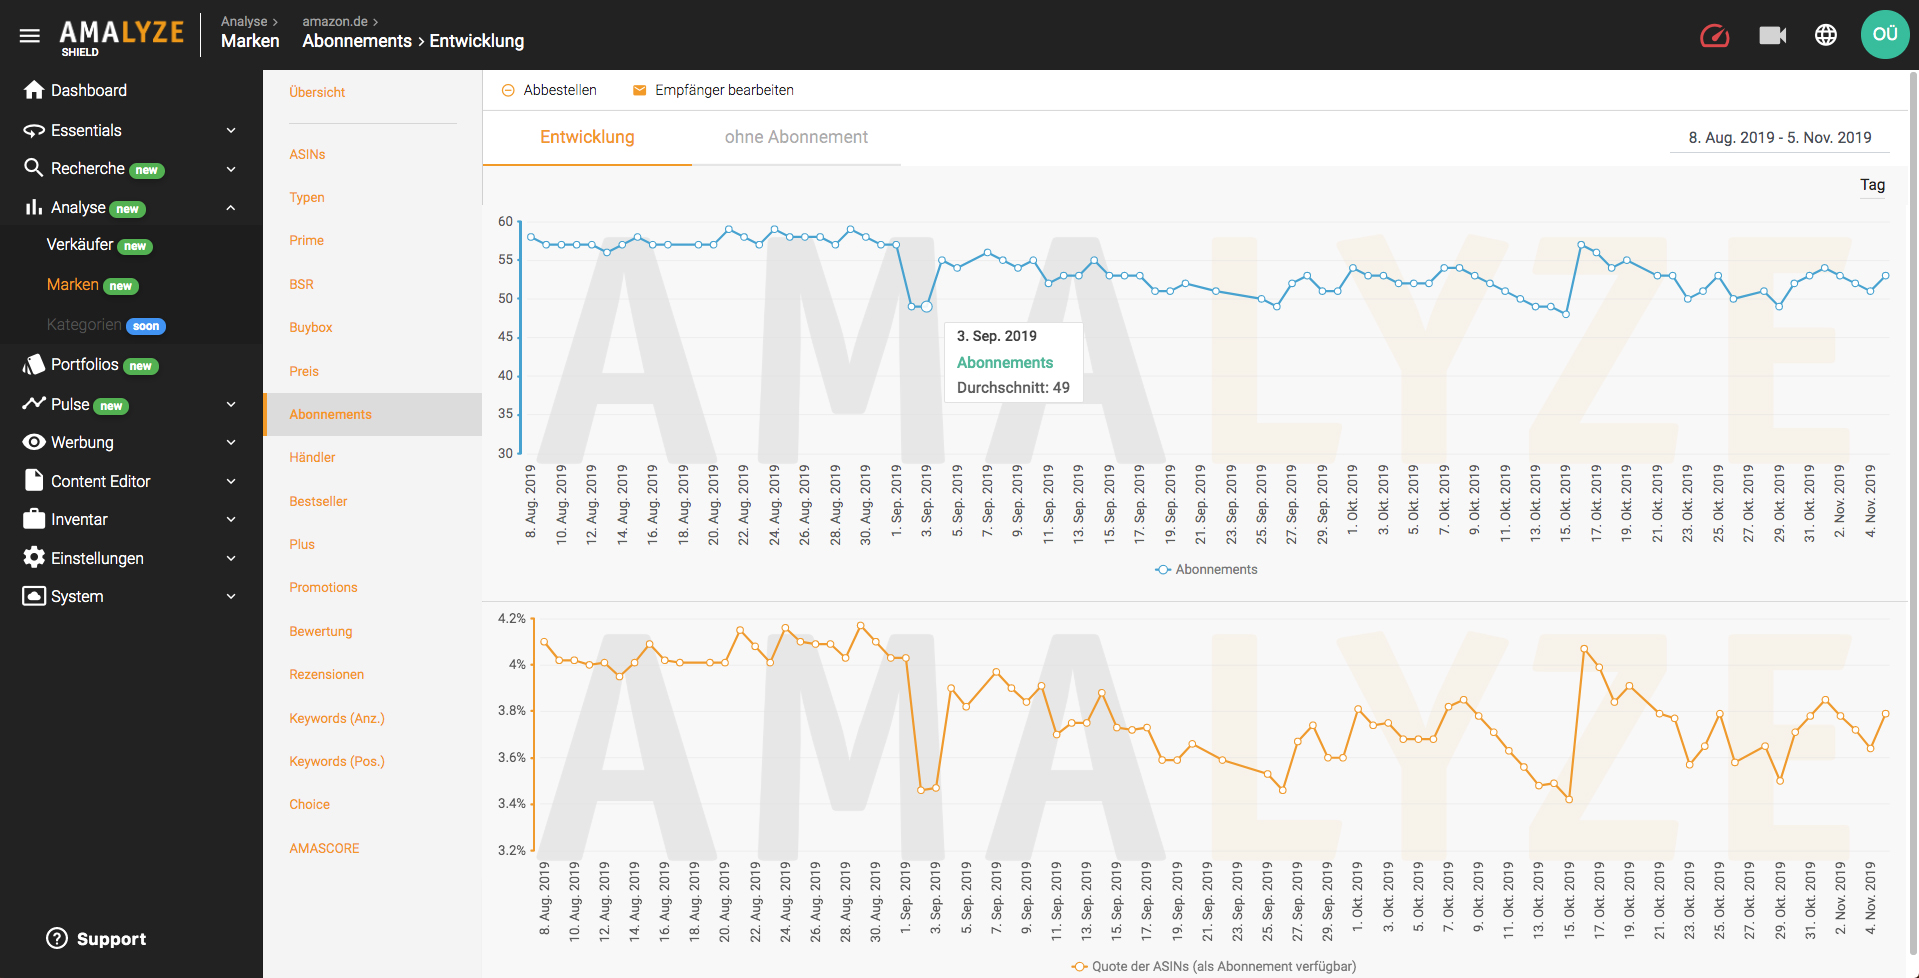 Amazon Brand Analysis Evaluation Subscriptions in Amazon Tool AMALYZE Shield